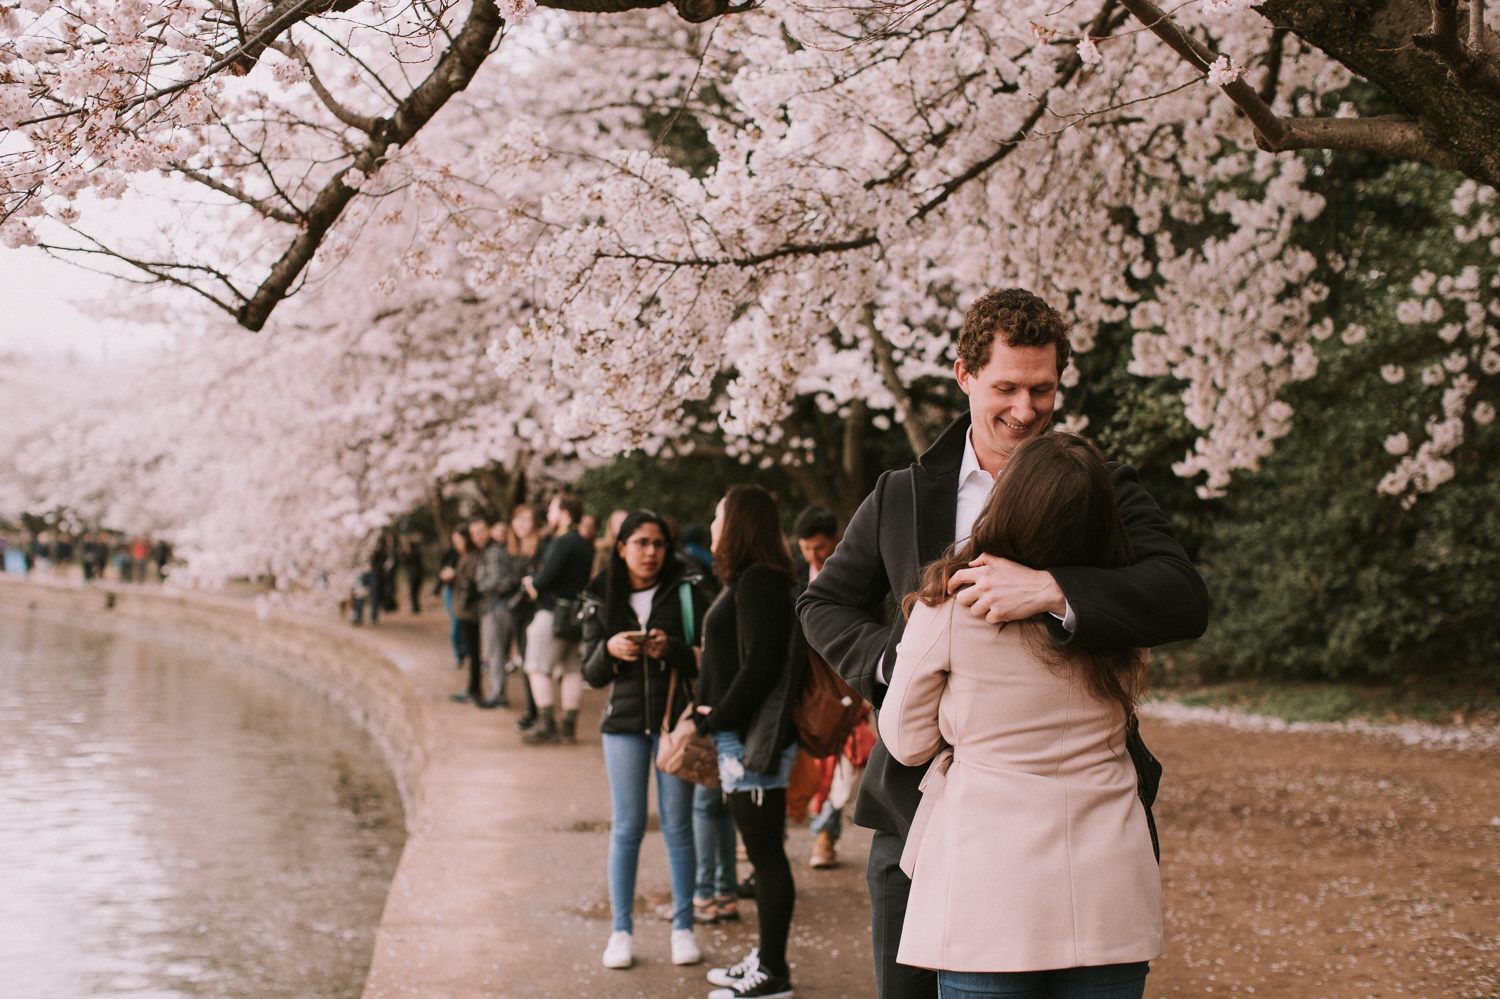 washington-dc-cherry-blossom-tidal-basin-proposal-photographer 10.jpg